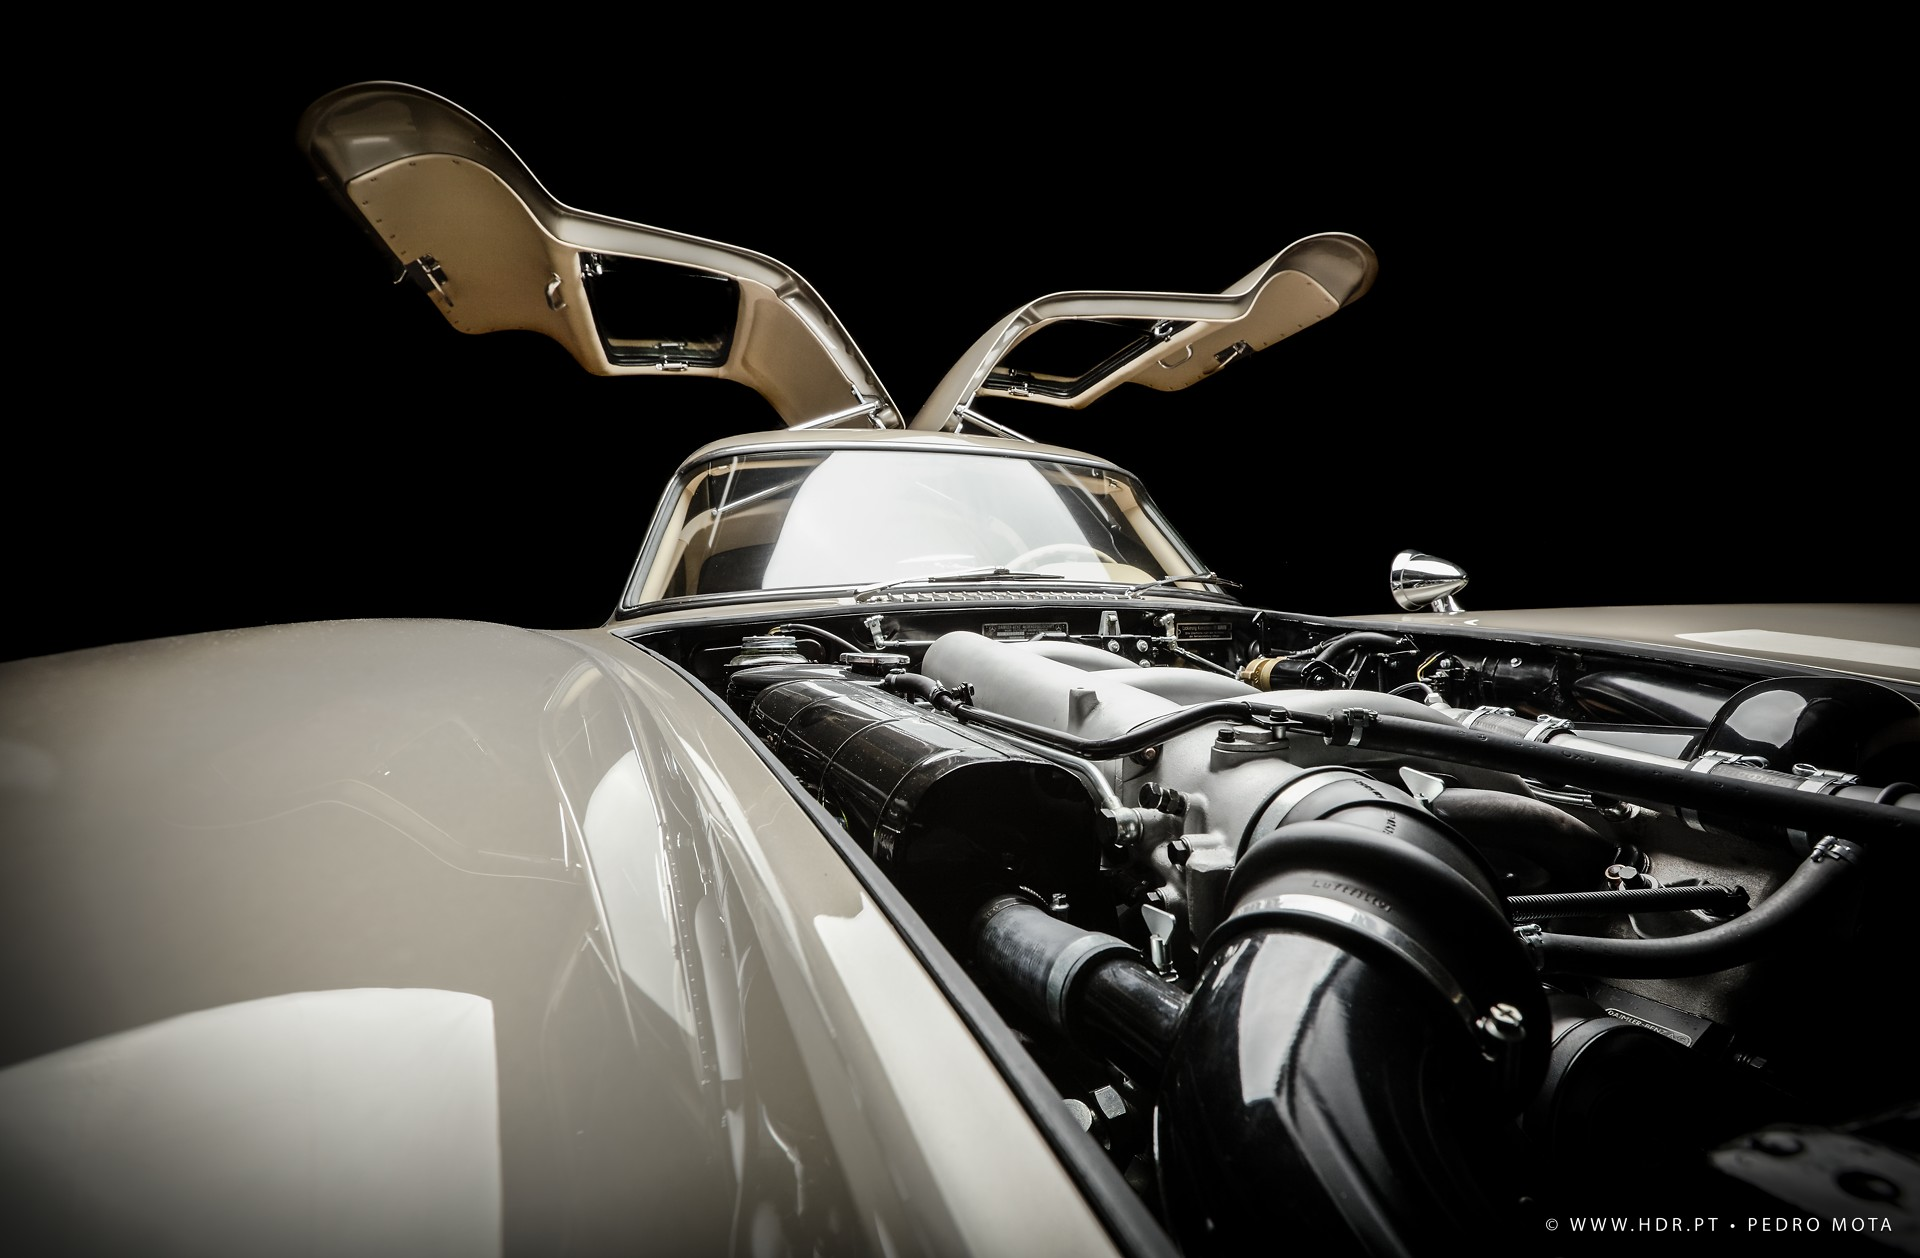 Mercedes 300 SL 1955 - Automotive Photography - Pedro Mota